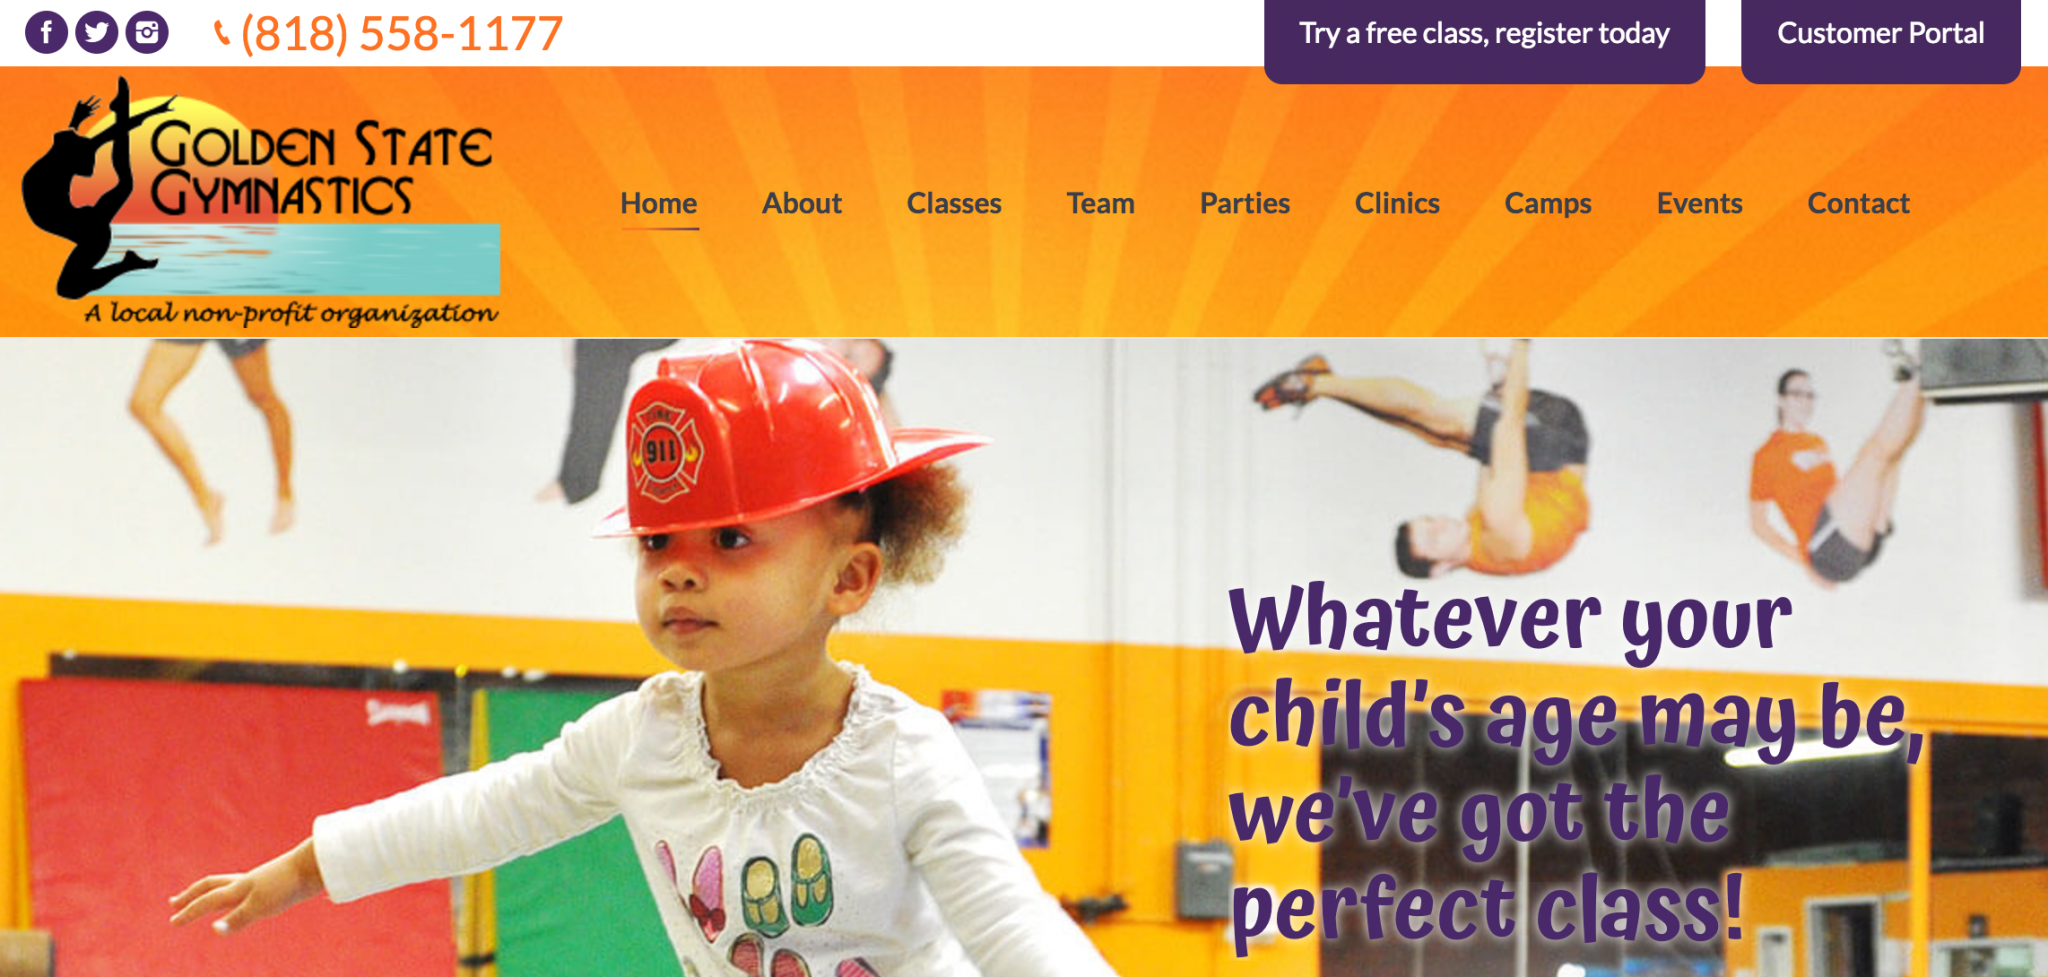 Client Shout-Out: Golden State Gymnastics Website